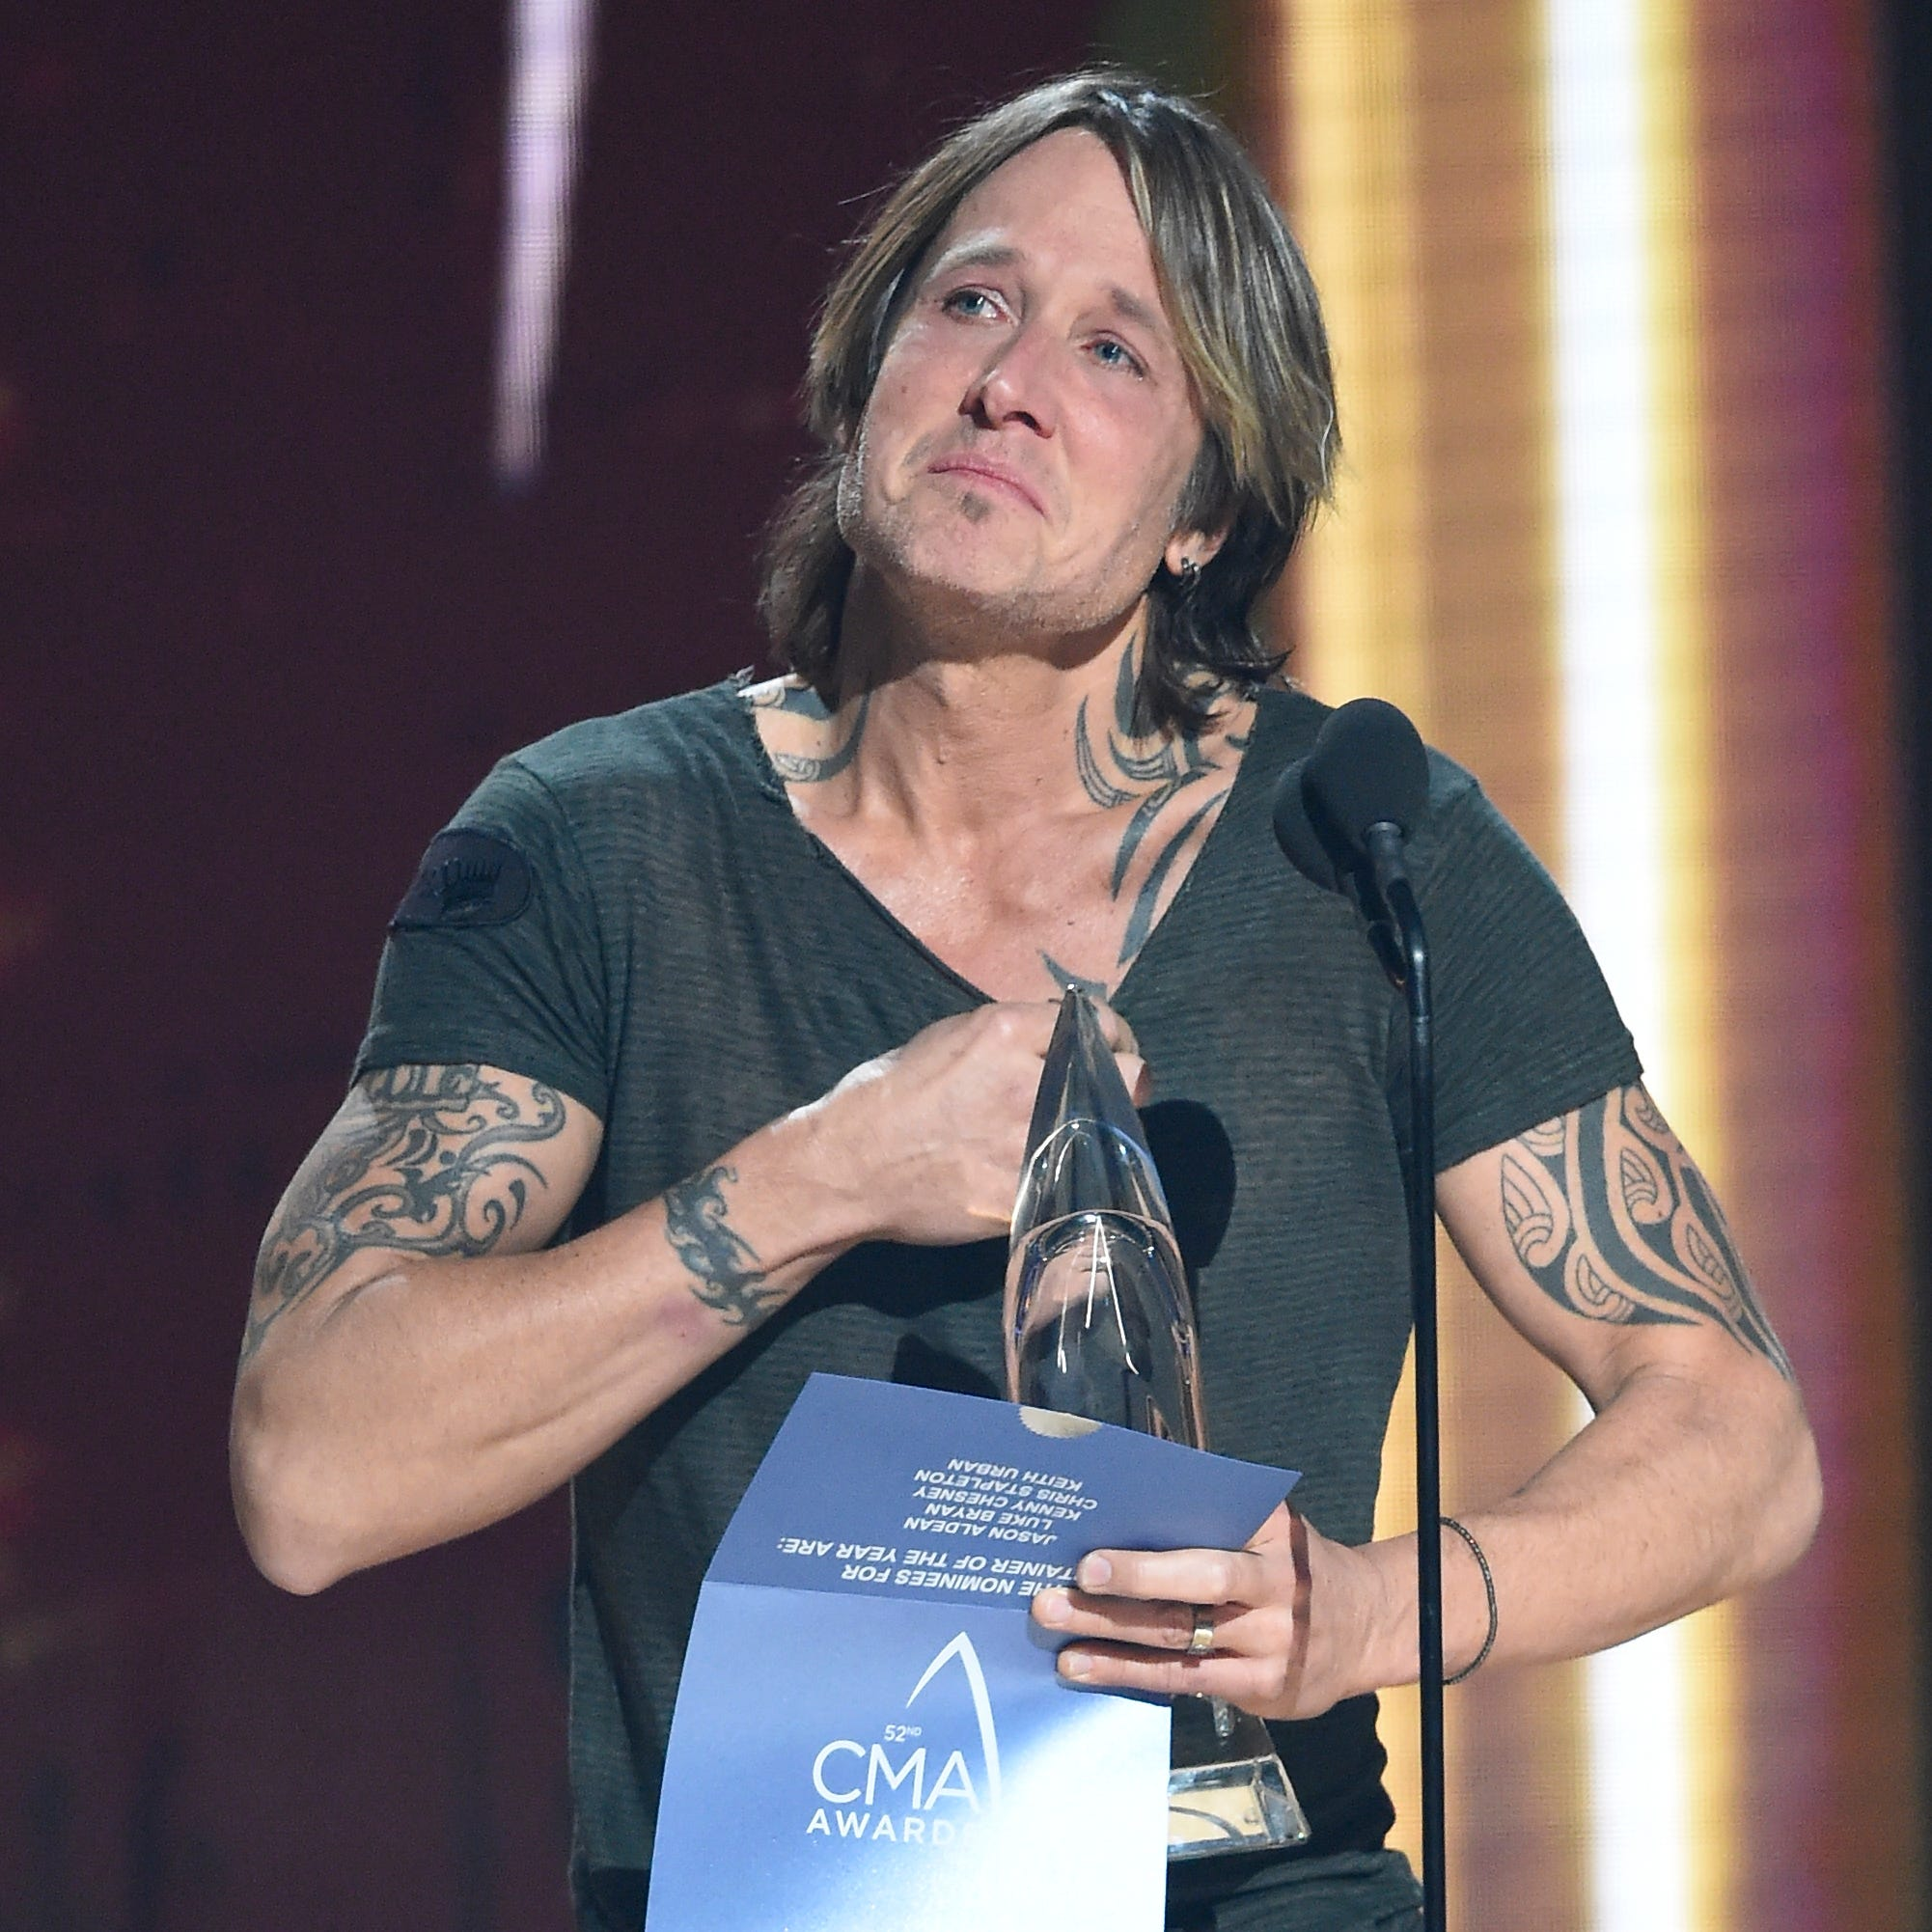 CMA Awards 2018: Keith Urban upsets, Chris Stapleton steamrolls